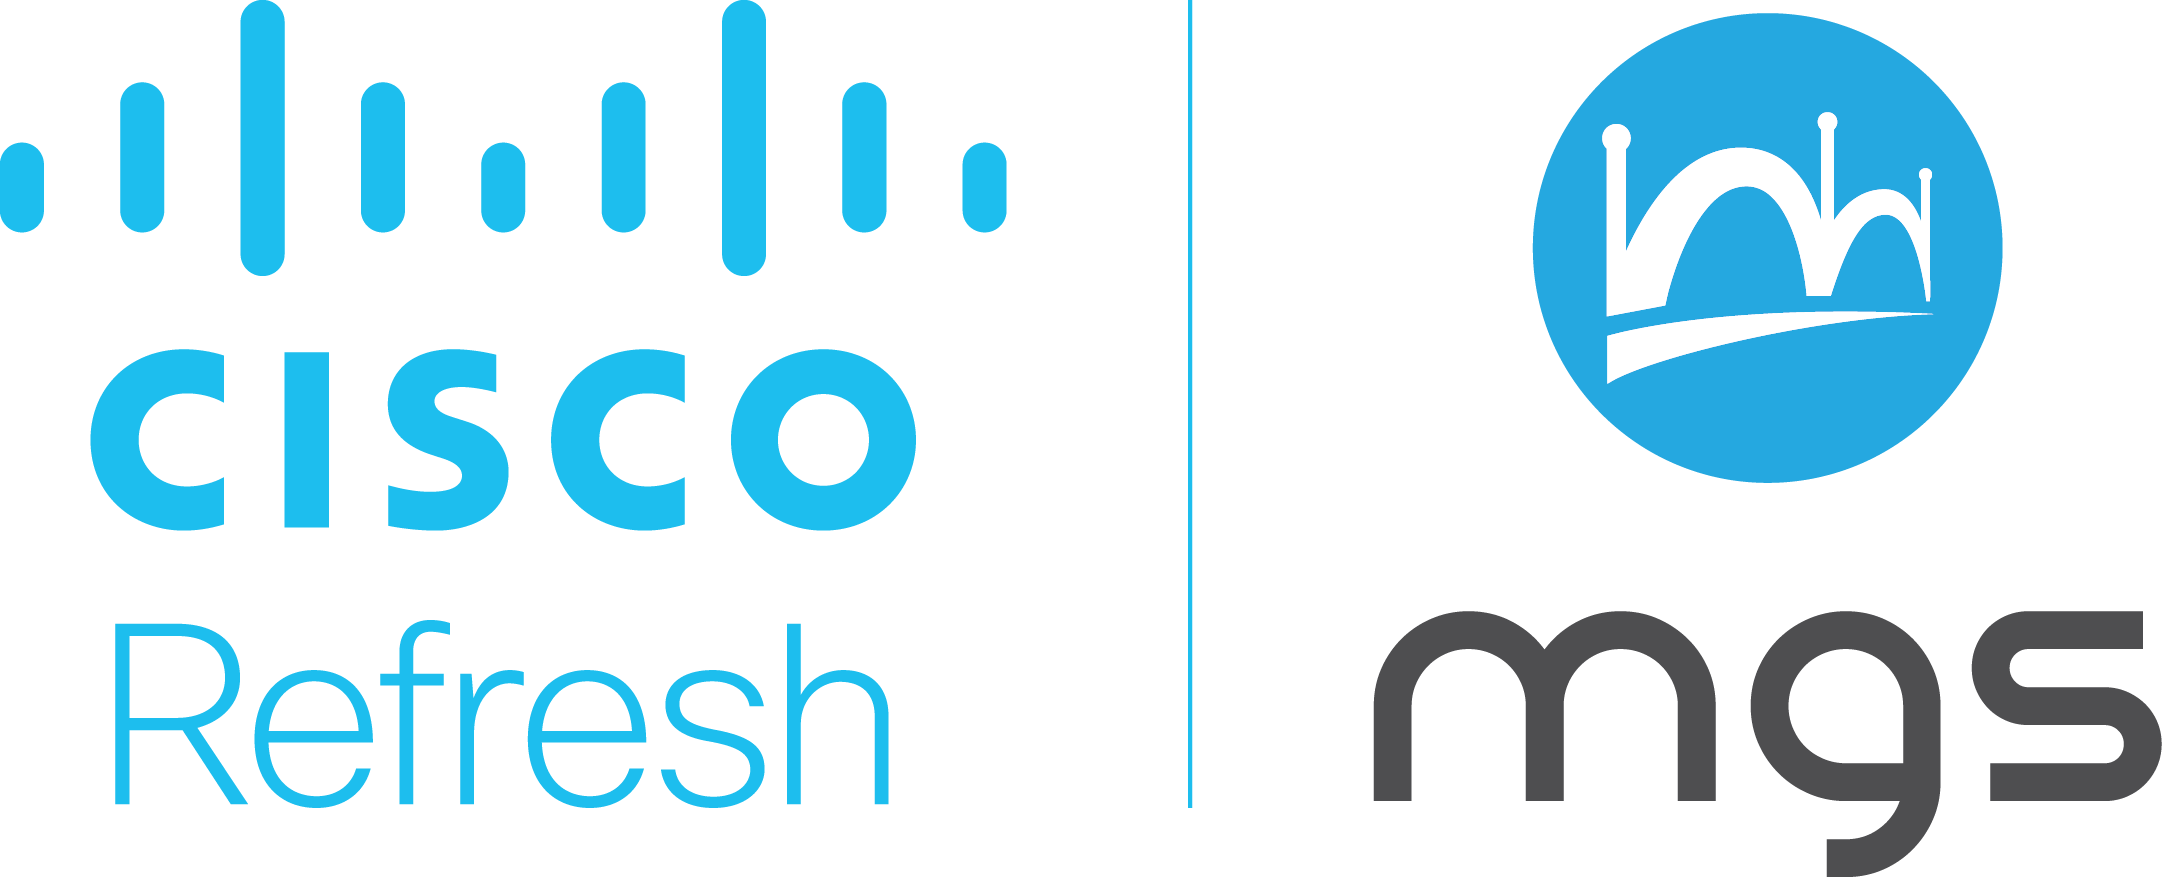 Melbourne Global Systems | Cisco Refresh